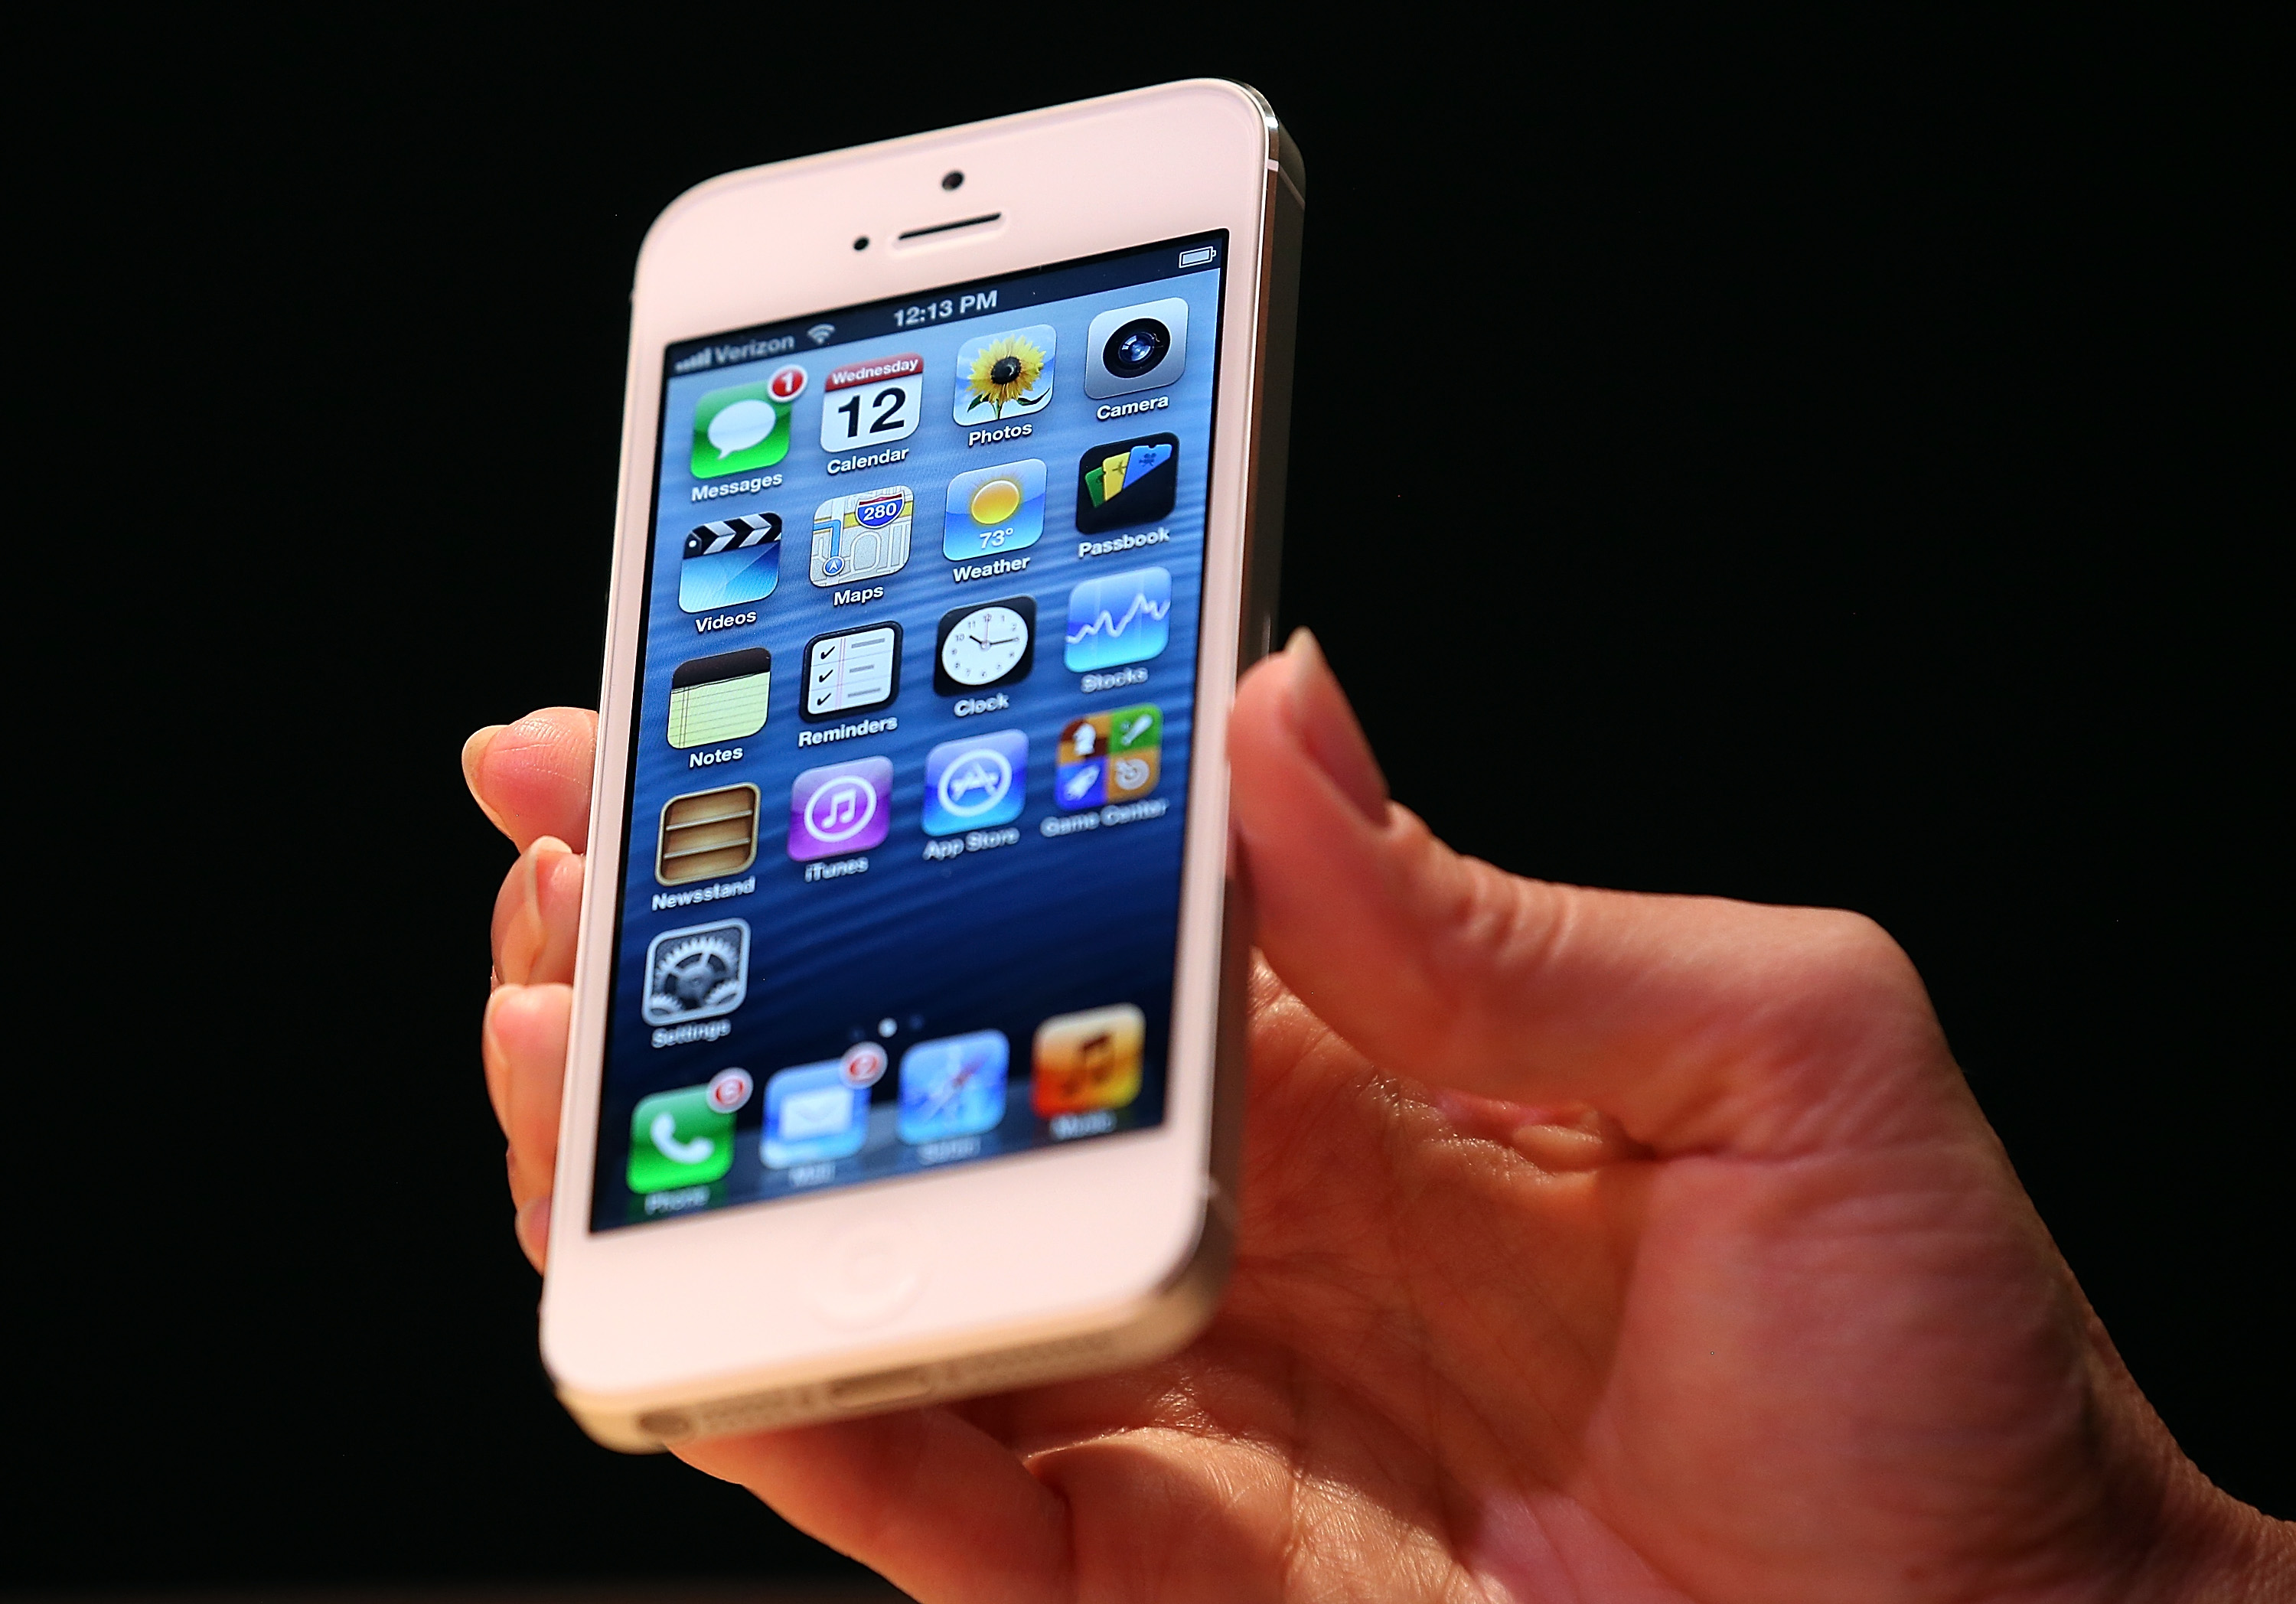 The new iPhone 5 is displayed during an Apple special event at the Yerba Buena Center for the Arts on September 12, 2012 in San Francisco, California.